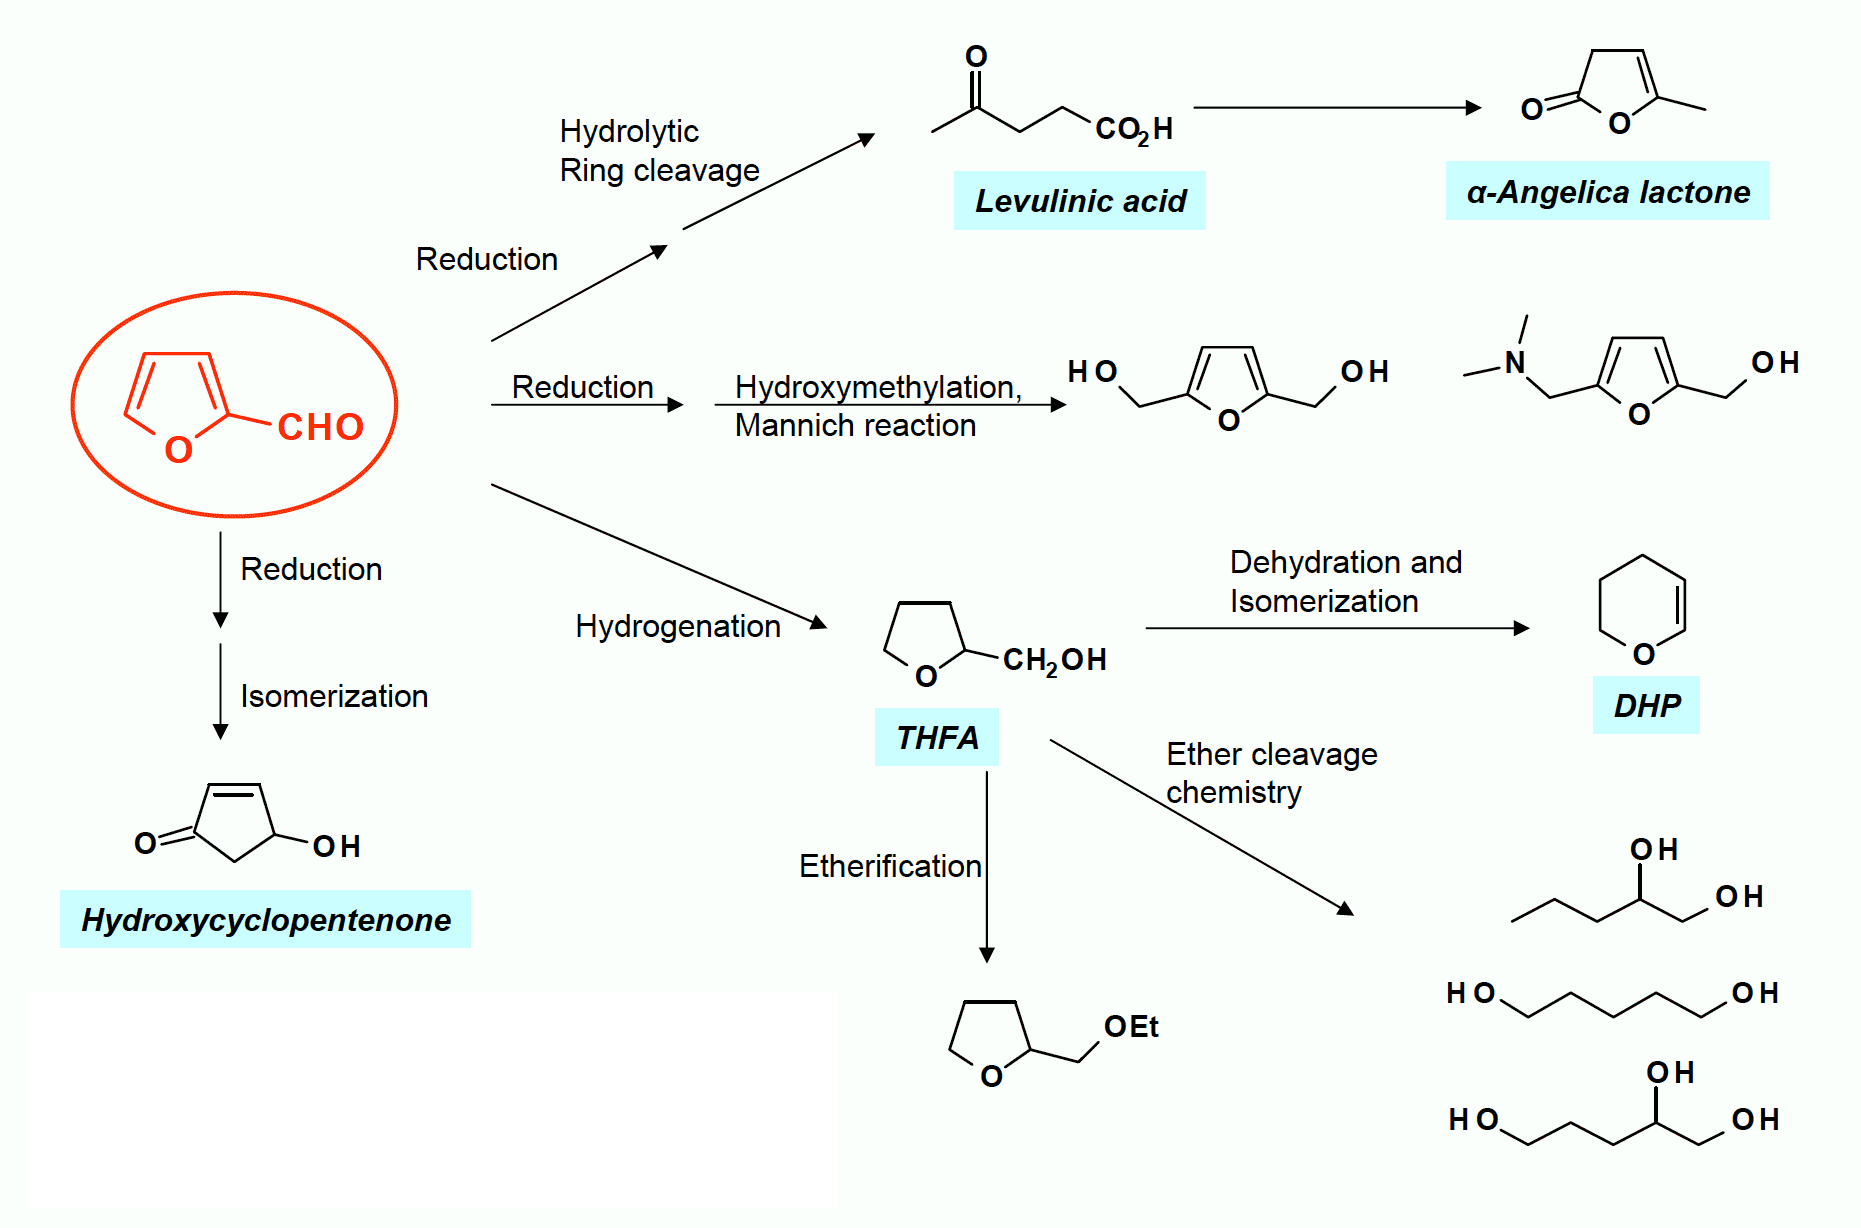 furfural reduction chemistry